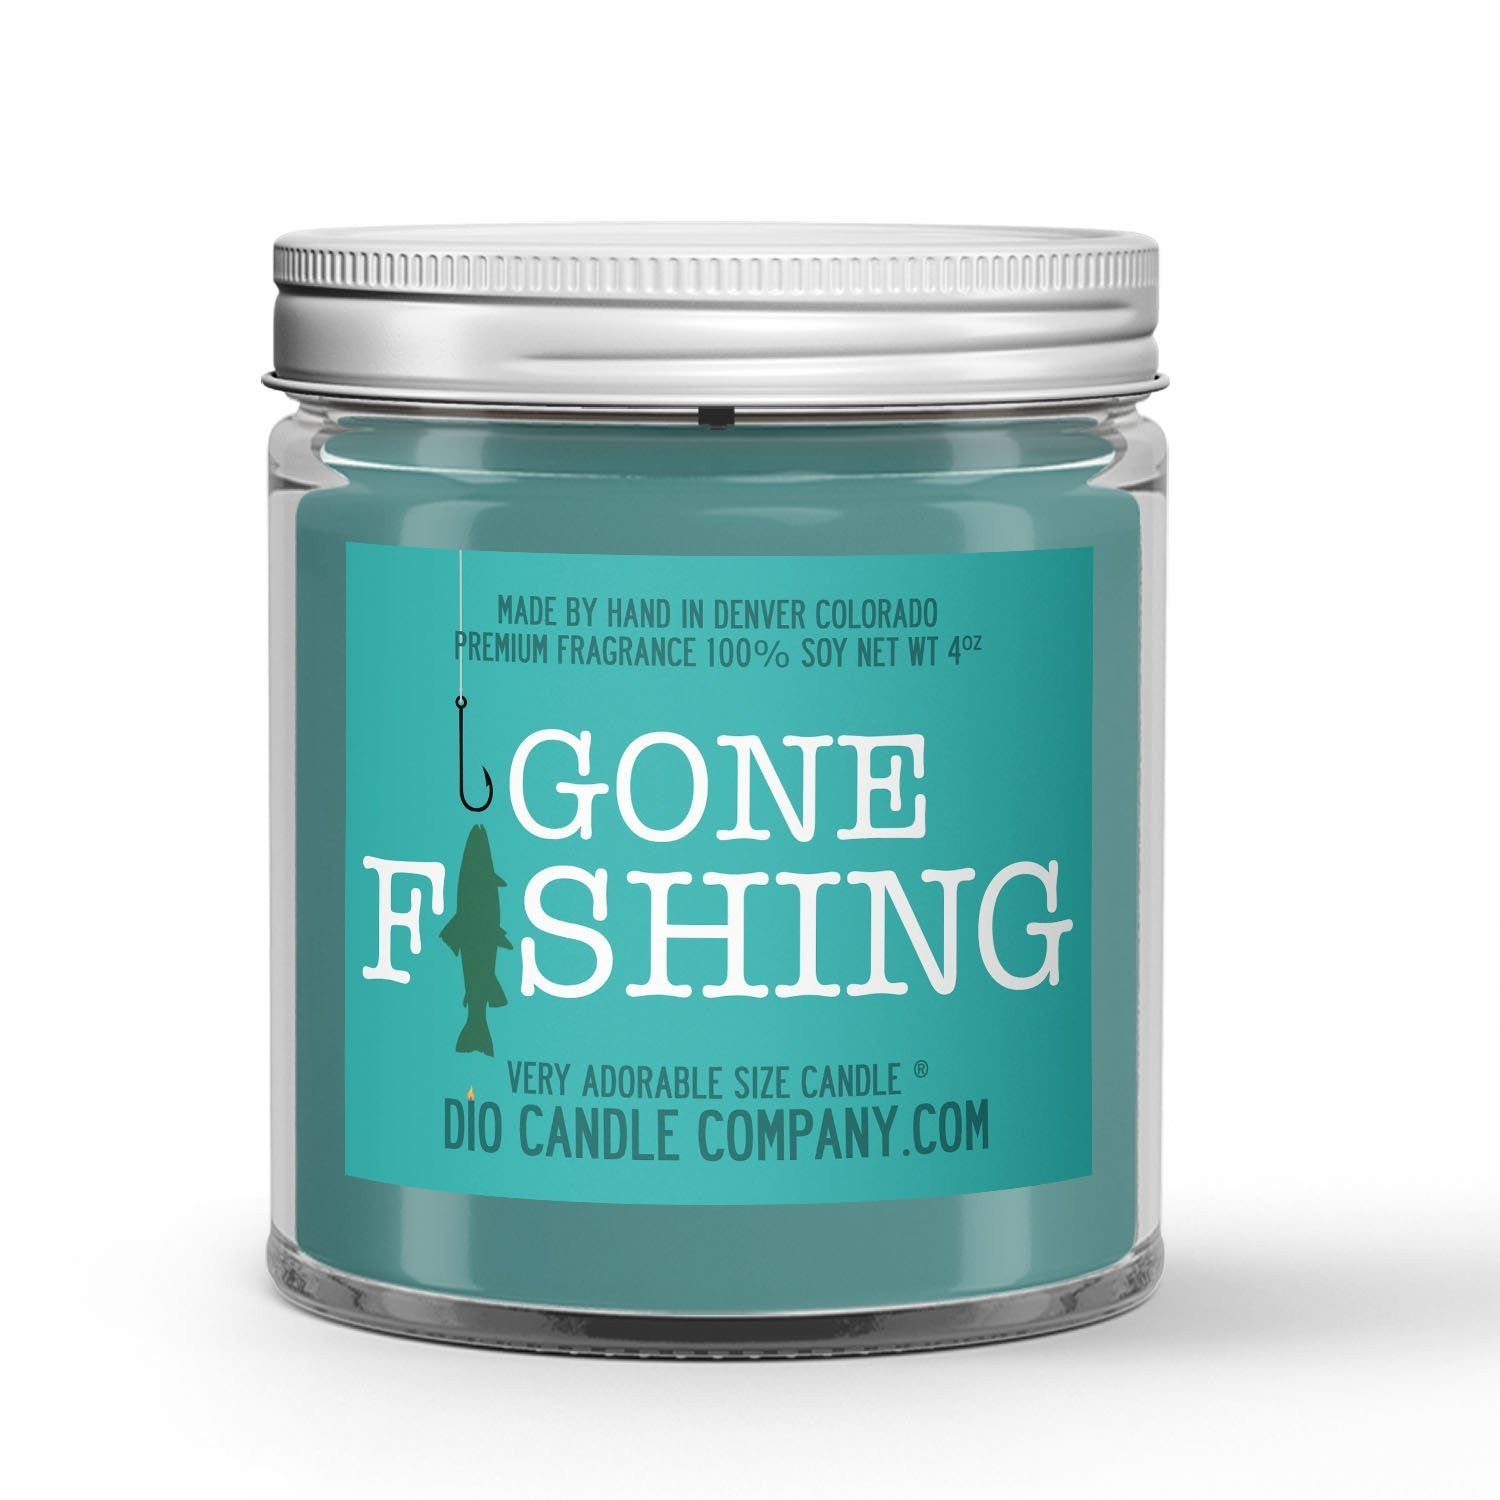 Fishing Candle - Lake Water - Mountain Air - Forest Trees - 4oz Very Adorable Size Candle® - Dio Candle Company